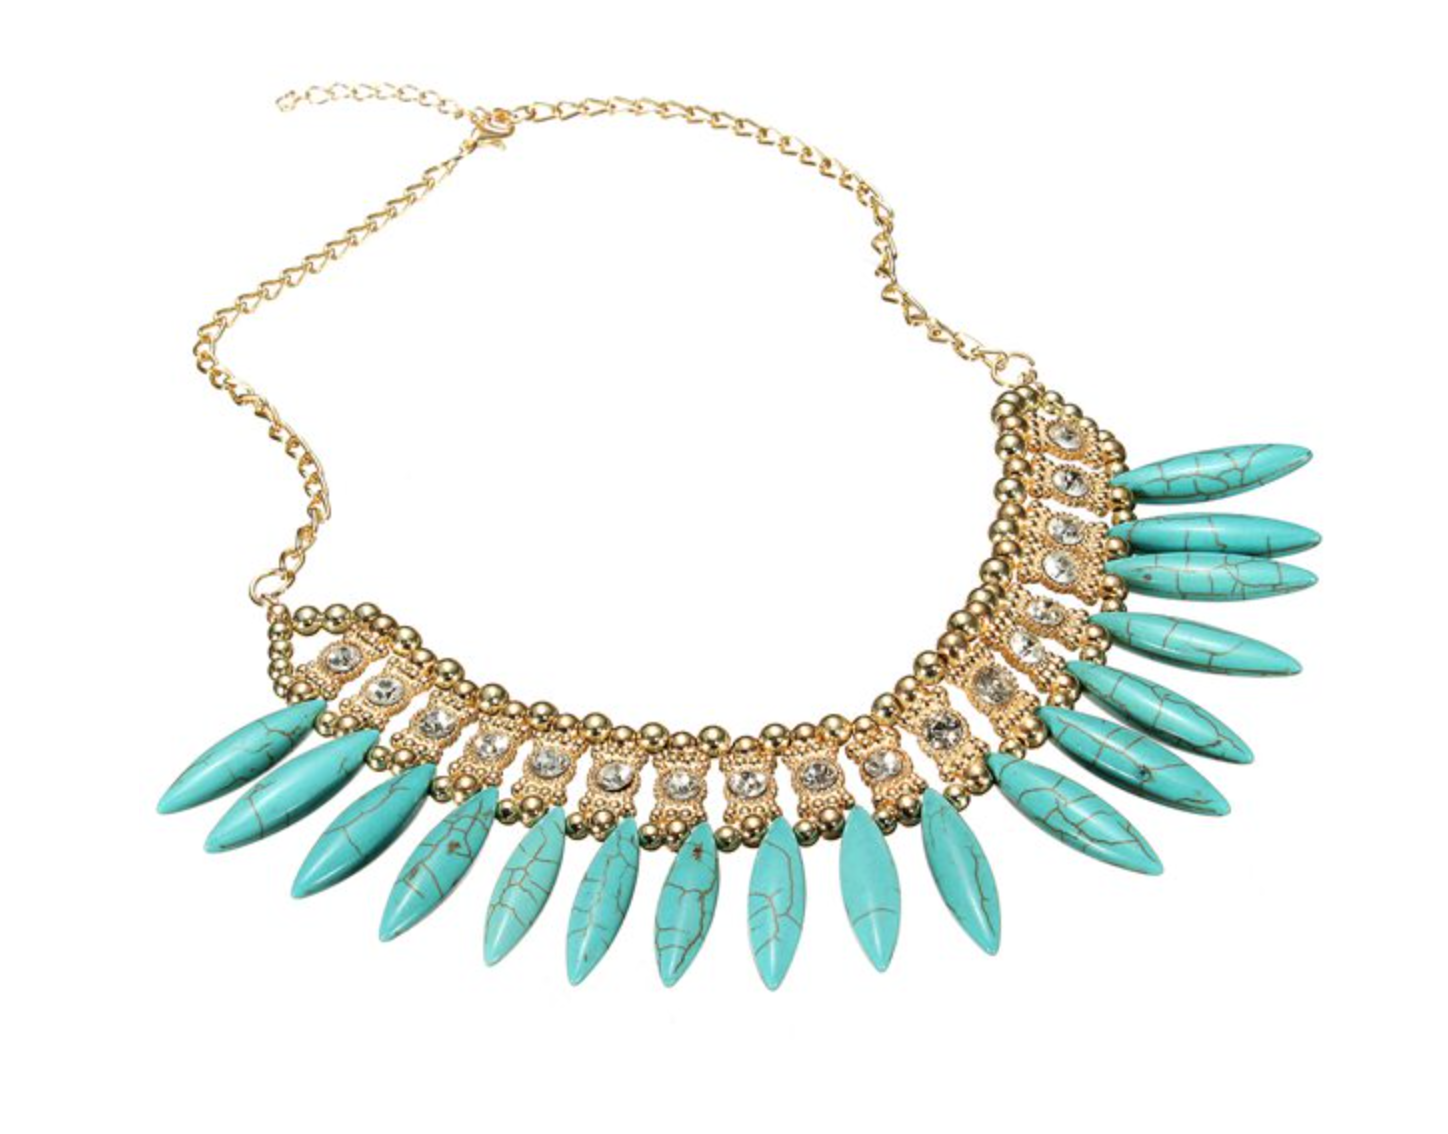 Necklace - Mirina Blue - Linda Boho w/ Gold and Crystals